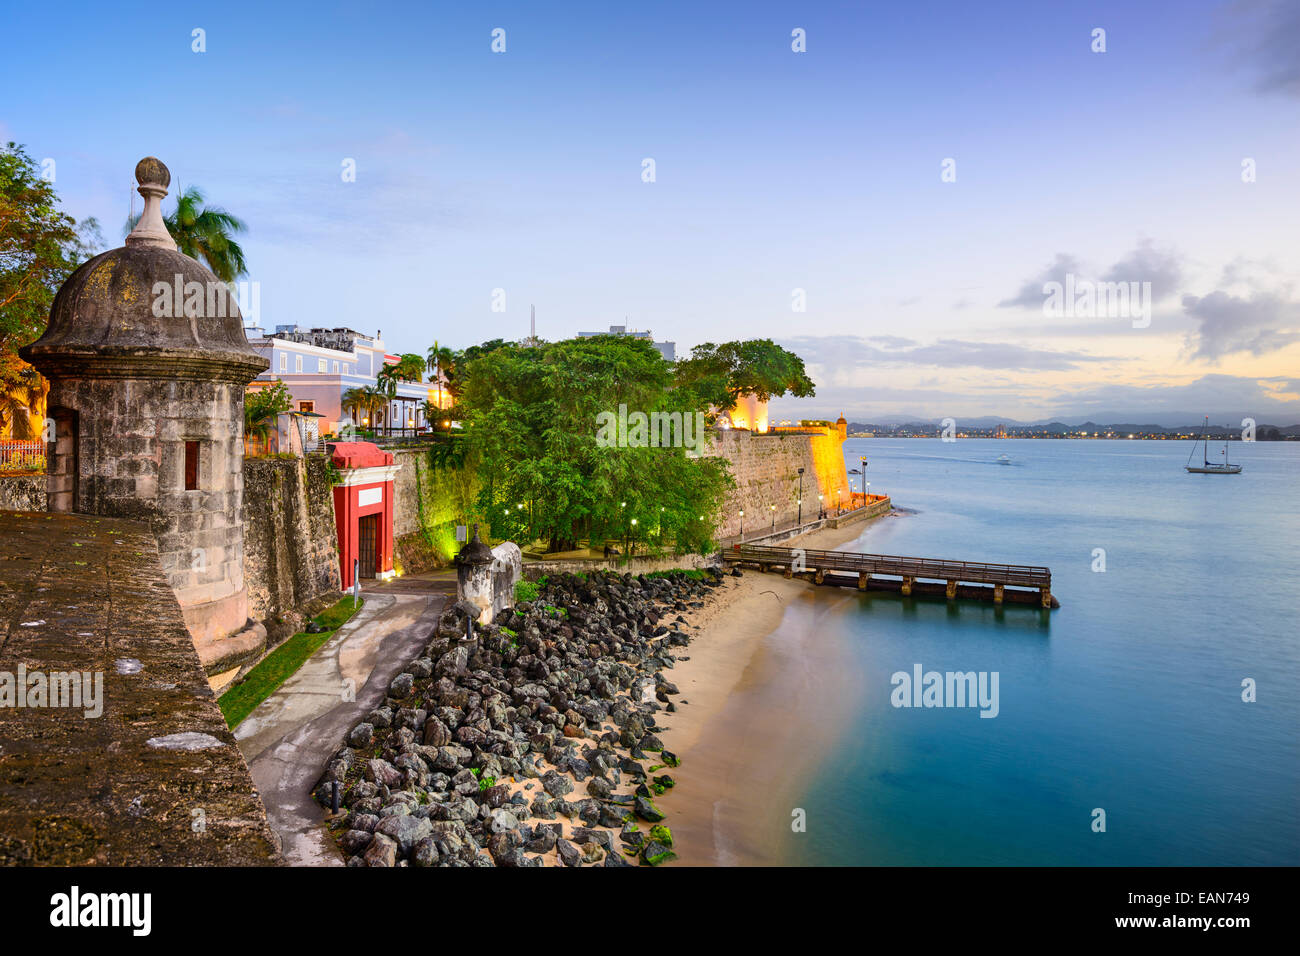 San Juan, Puerto Rico old city view over Paseo de la Princesa. - Stock Image